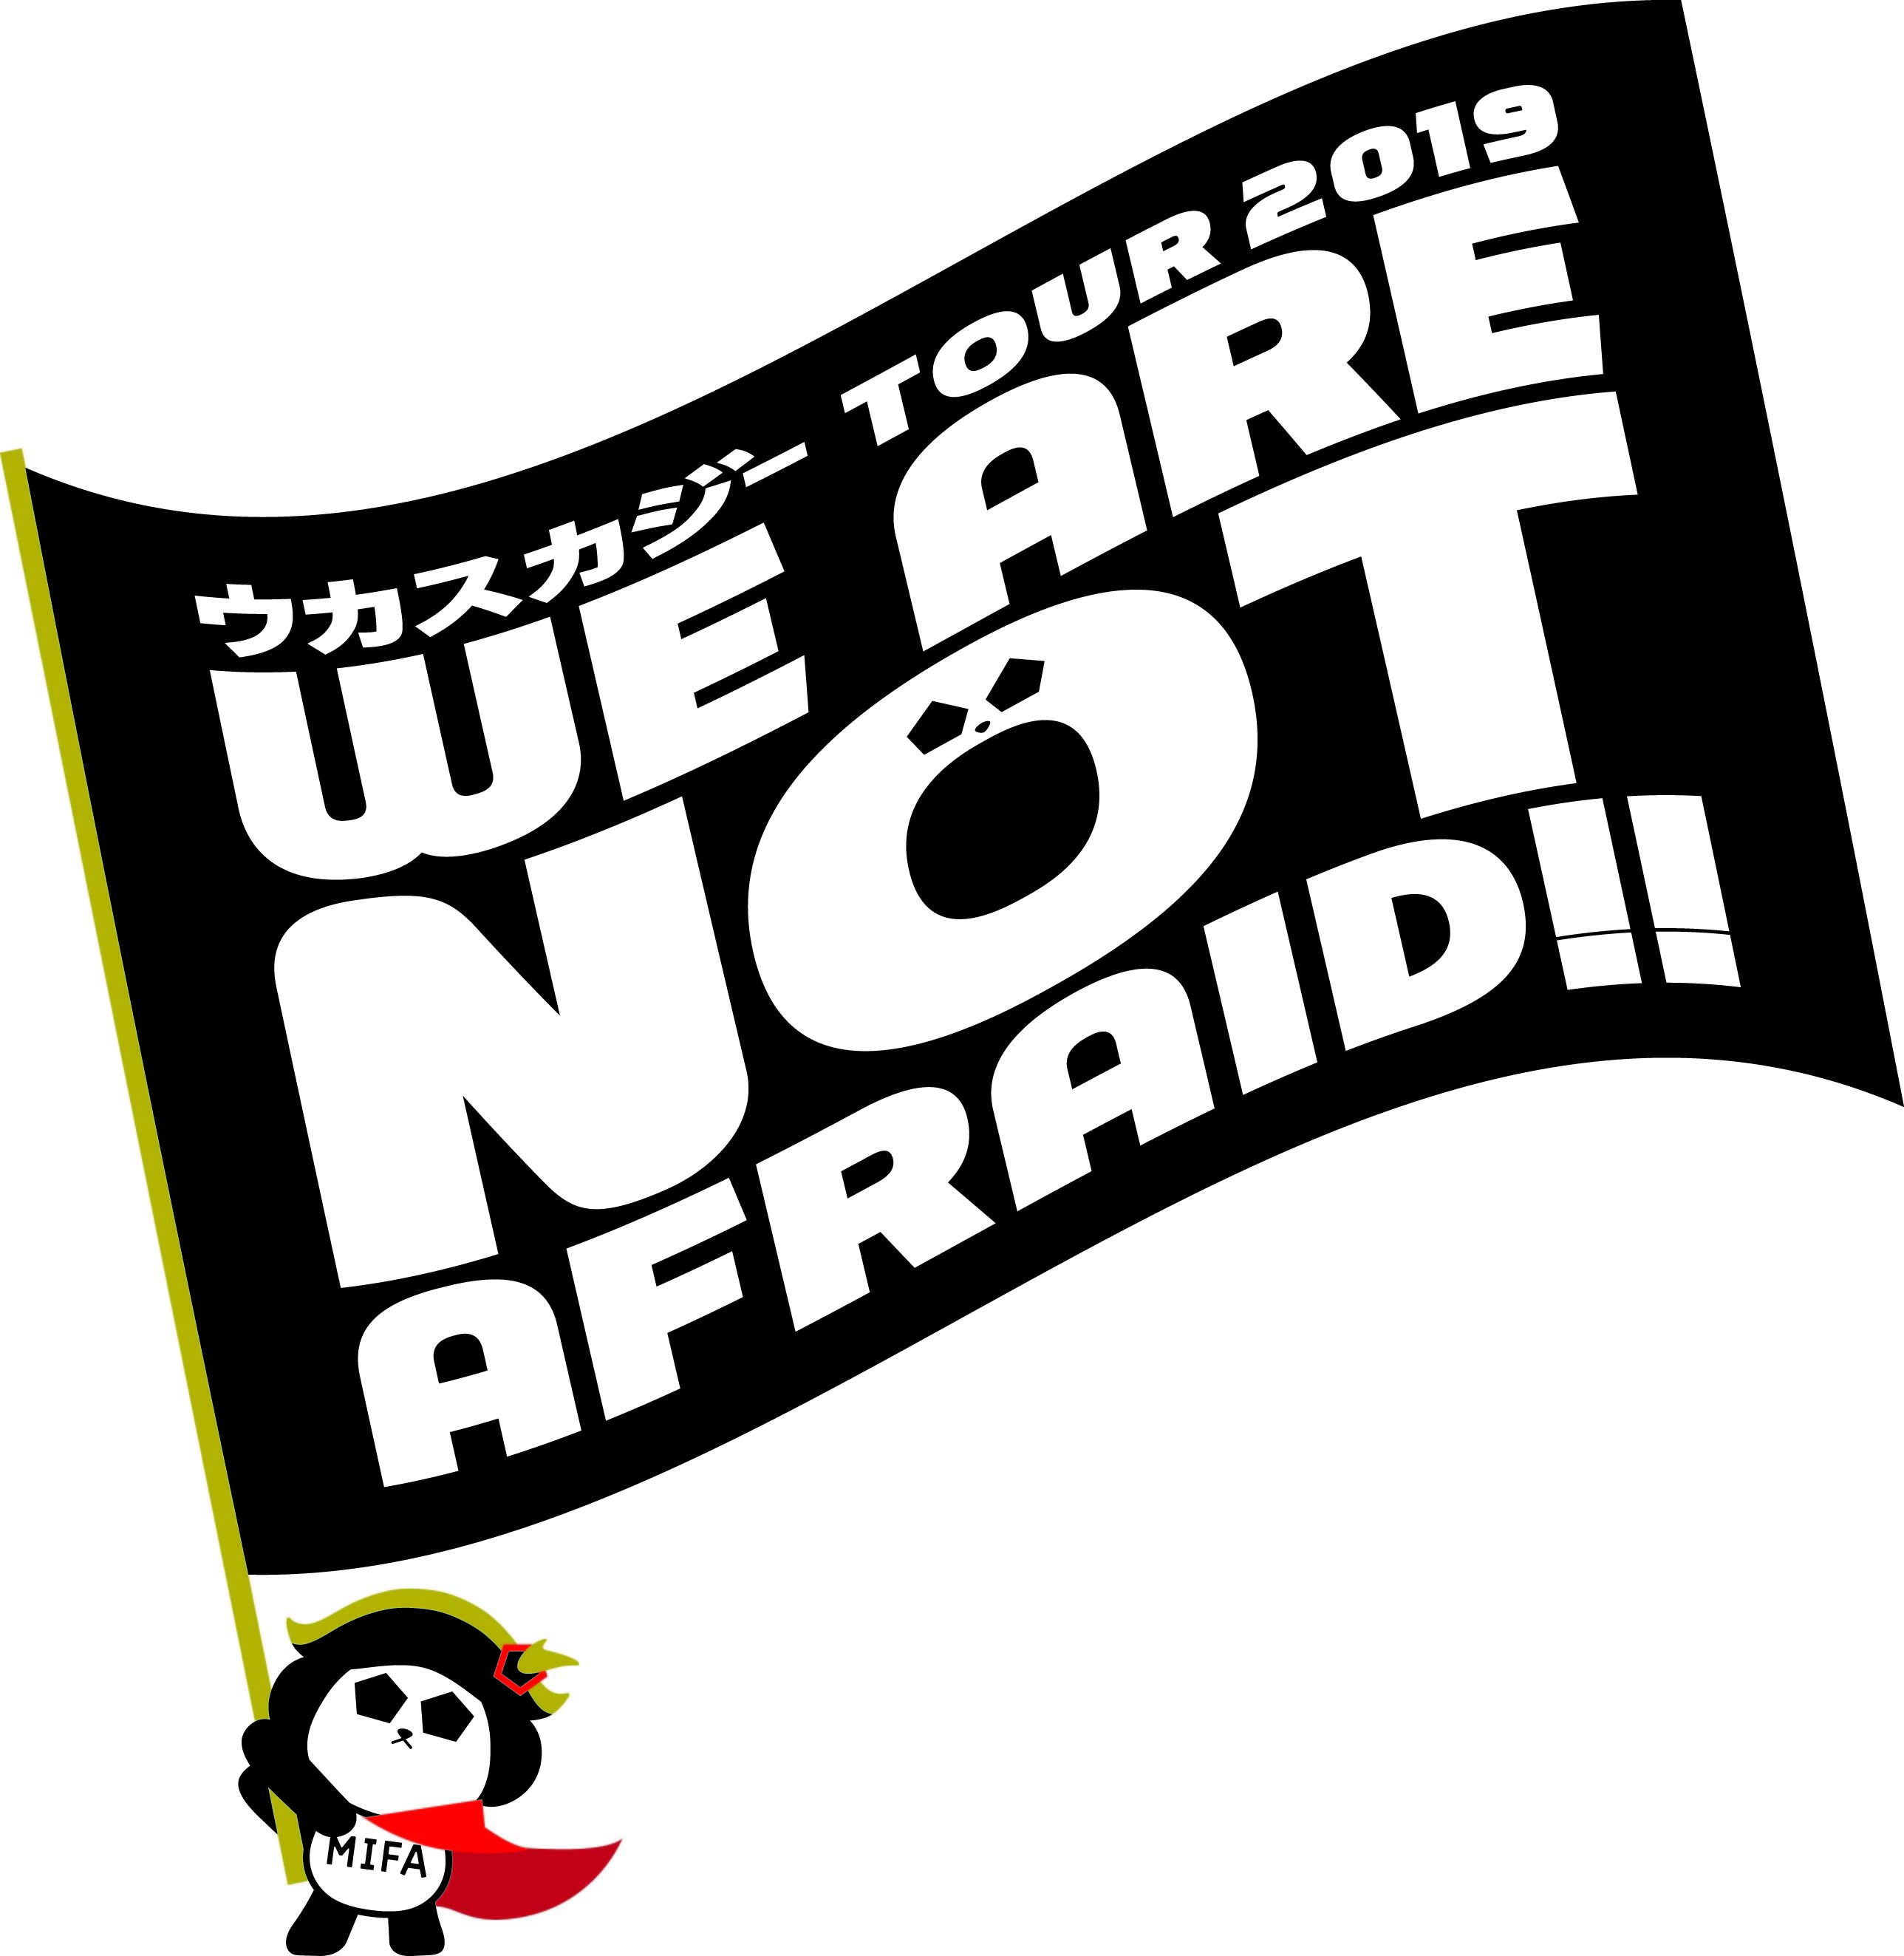 ウカスカジー TOUR 2019 WE ARE NOT AFRAID!!